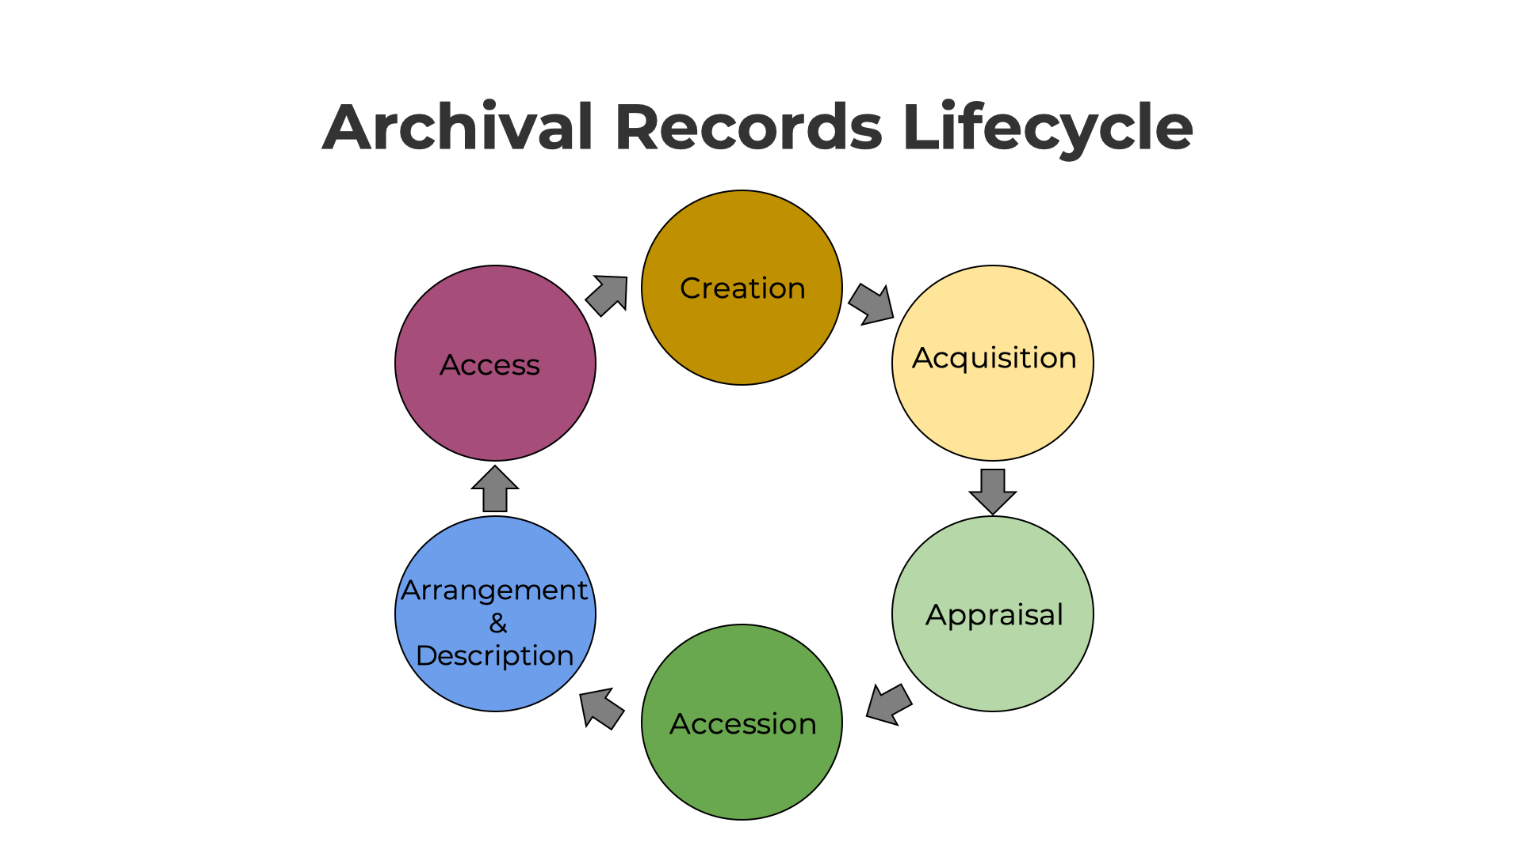 Archival records lifecycle: creation, acquisition, appraisal, accession, arrangement and description, and access.  See longer description in body of text.